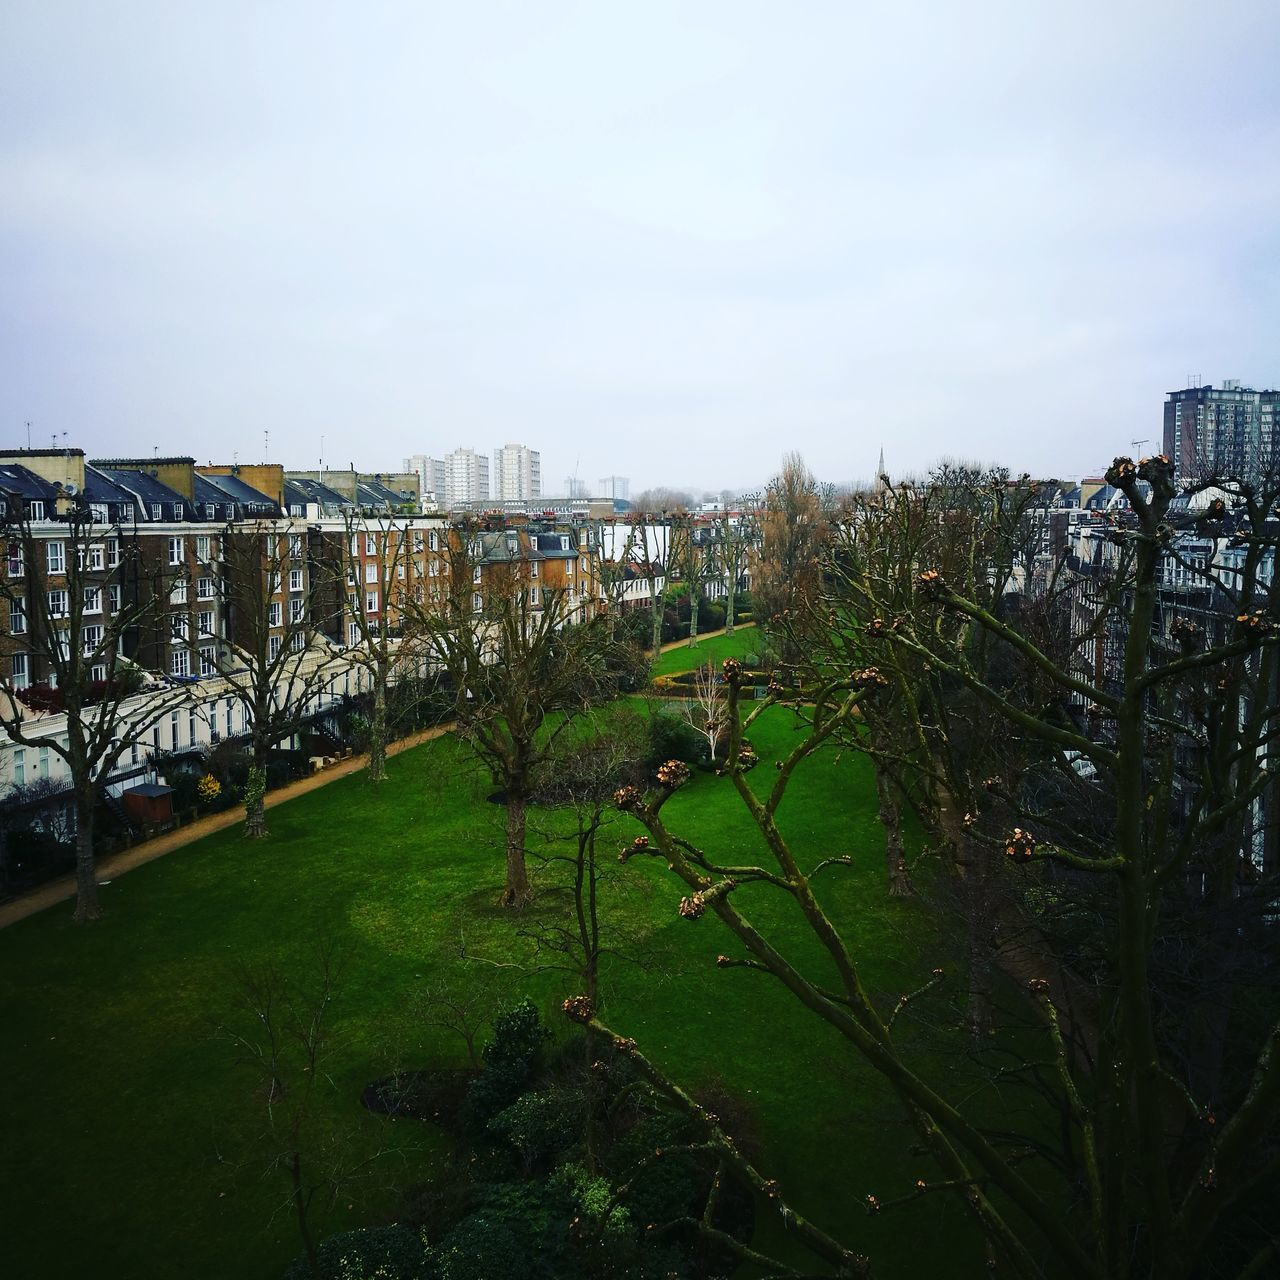 architecture, building exterior, growth, sky, built structure, outdoors, day, grass, no people, green color, city, nature